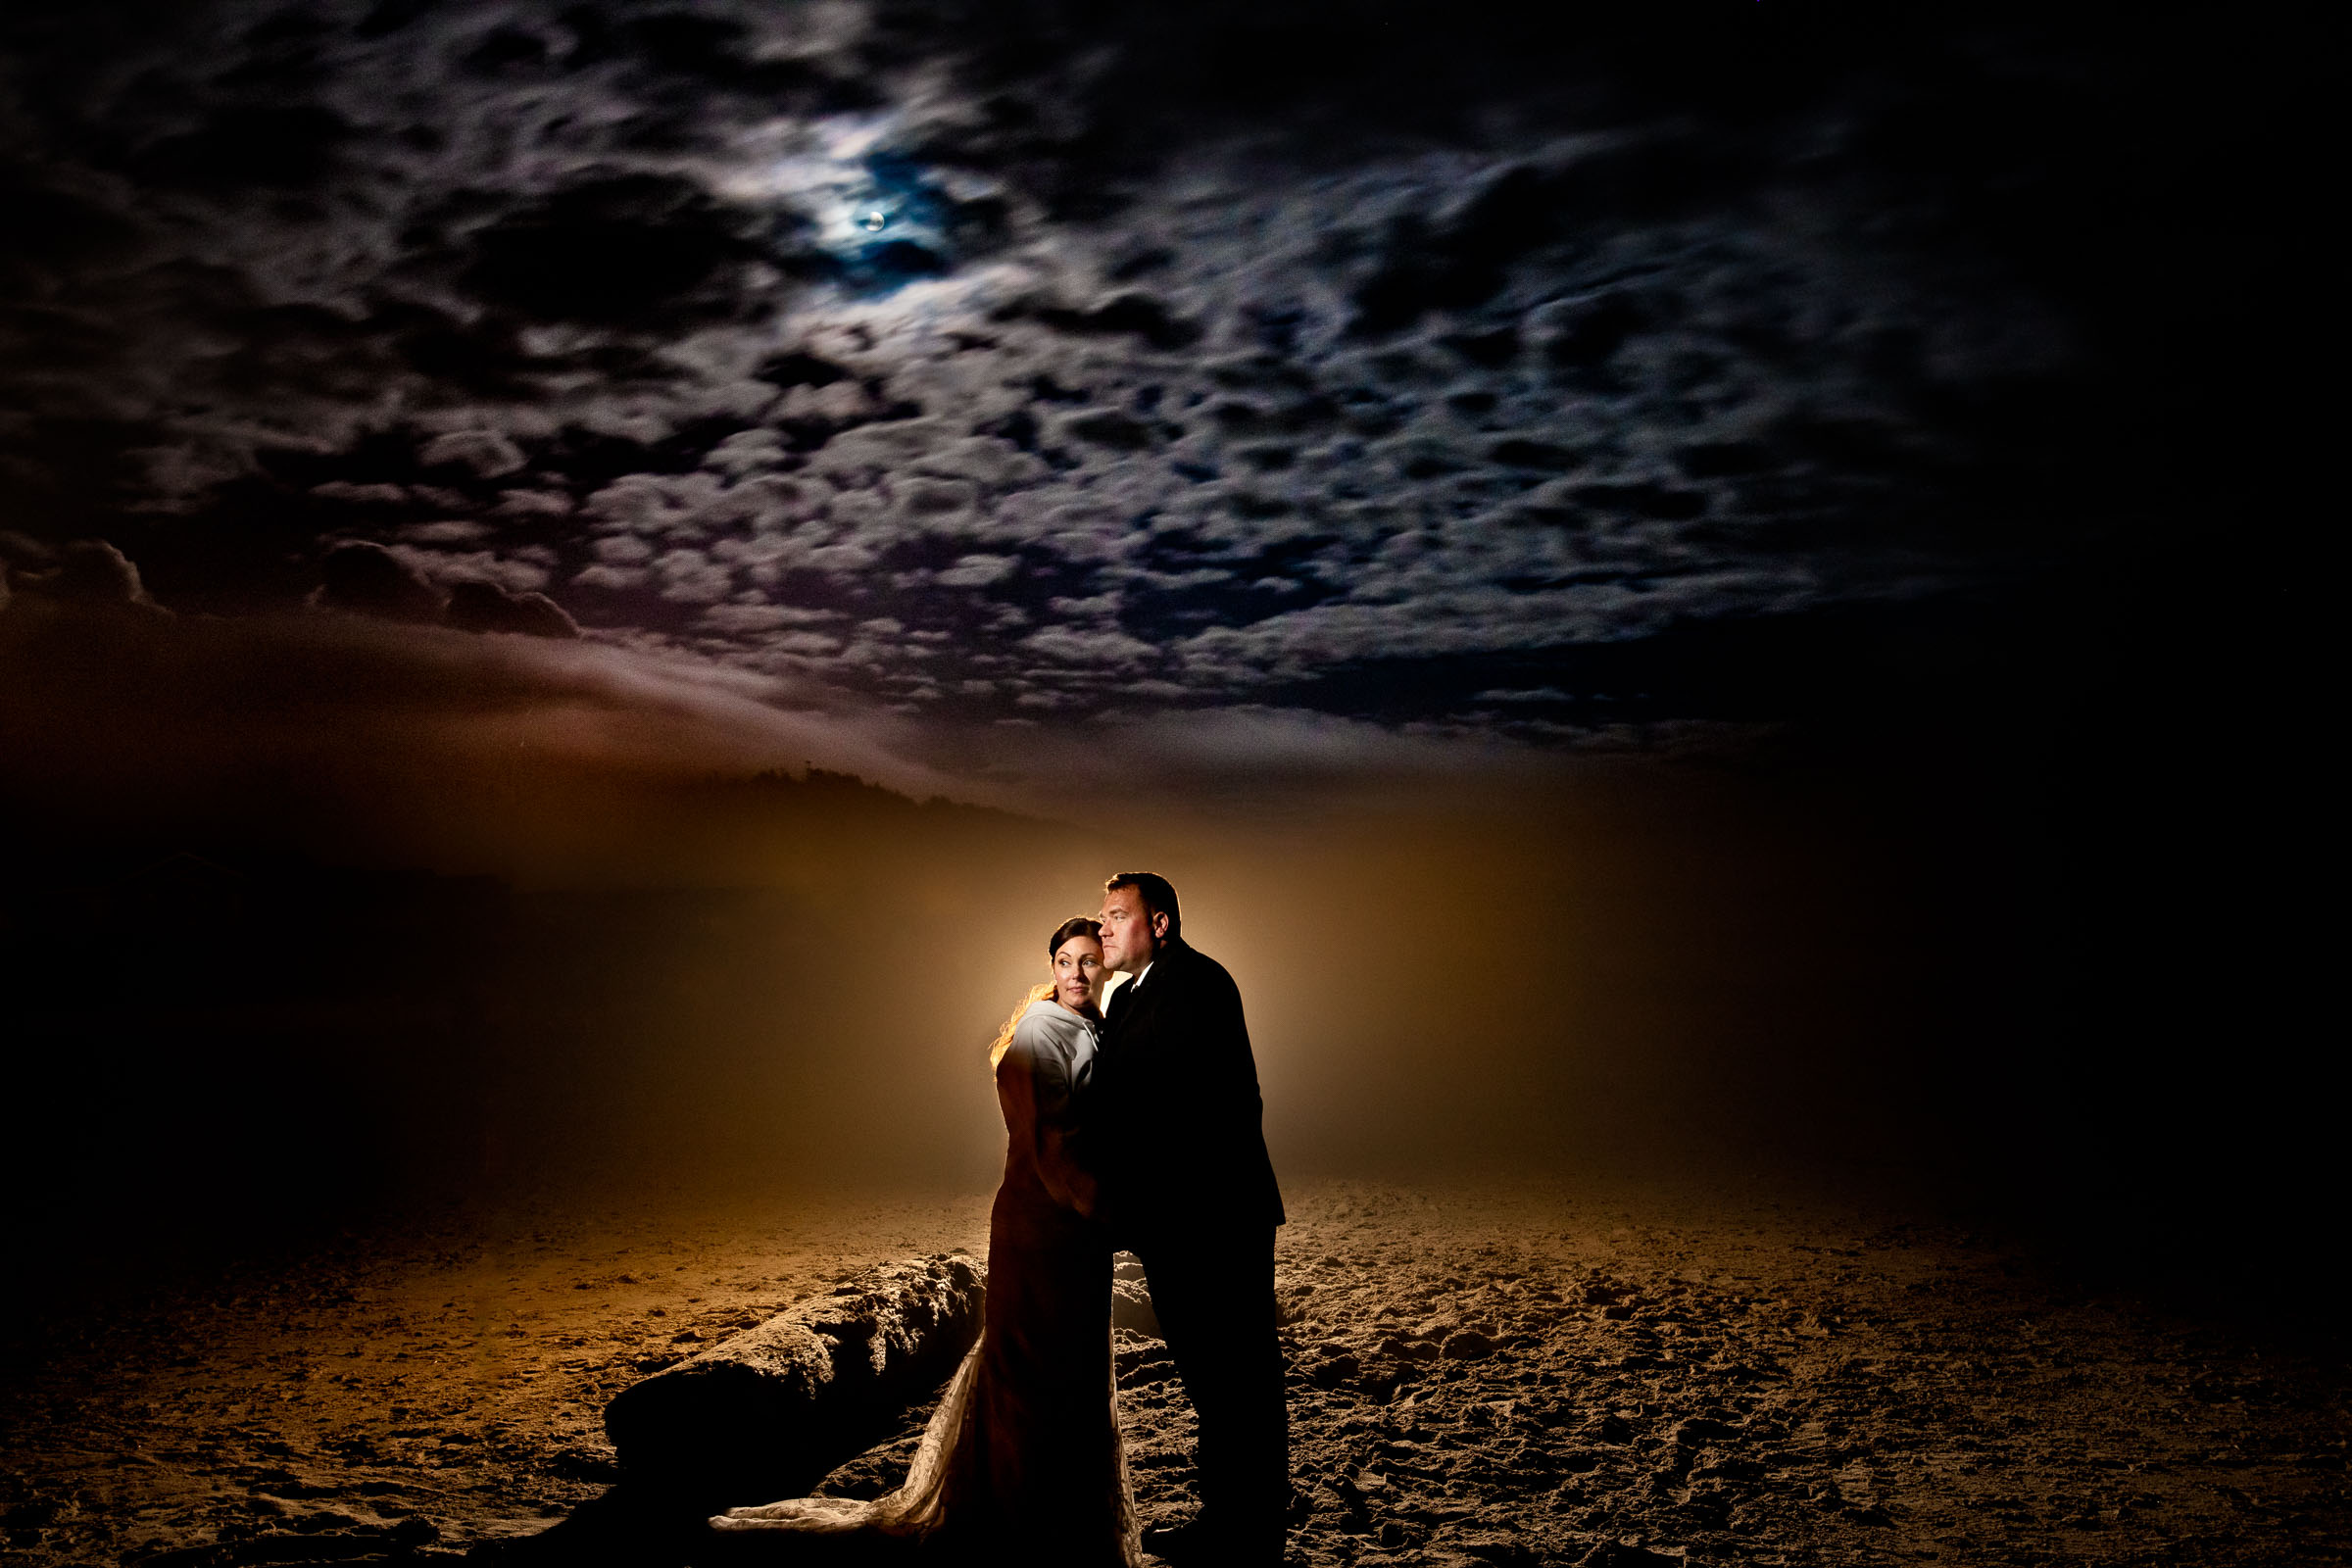 Epic night photo of bride and groom during their Cannon beach elopement reception